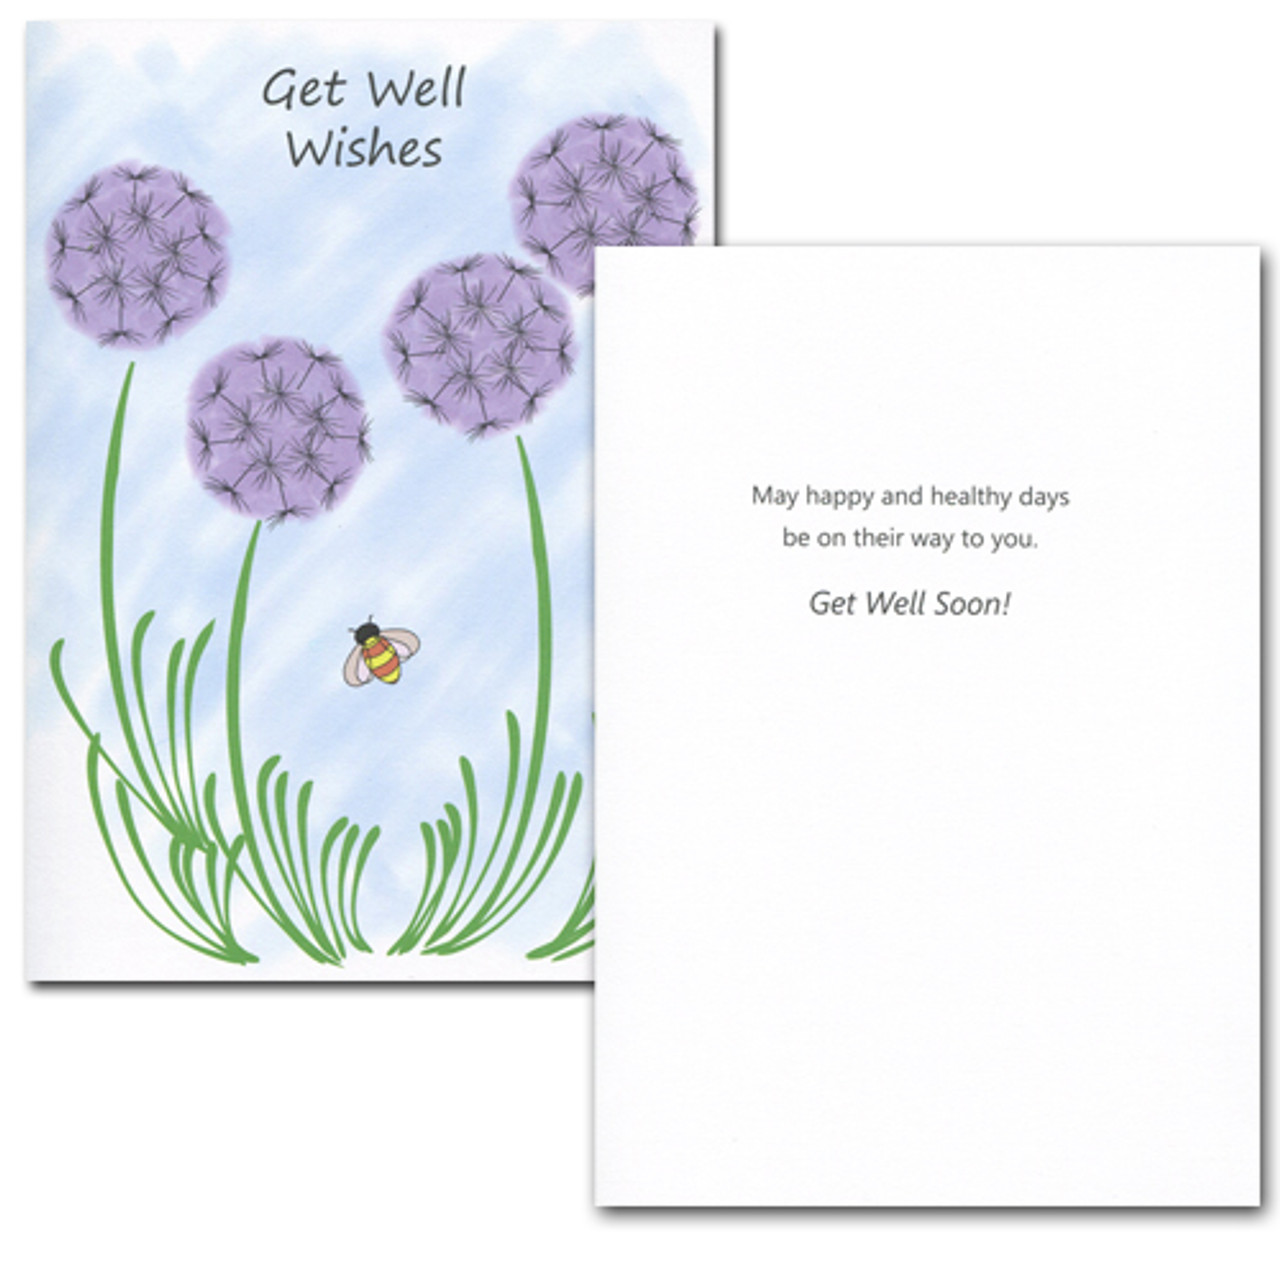 "Get Well Card - Wishes inside has the works ""May happy and healthy days be on their way to you Get Well Soon"" and space to write a get well message from a medical professional, business associate or personal relationship"